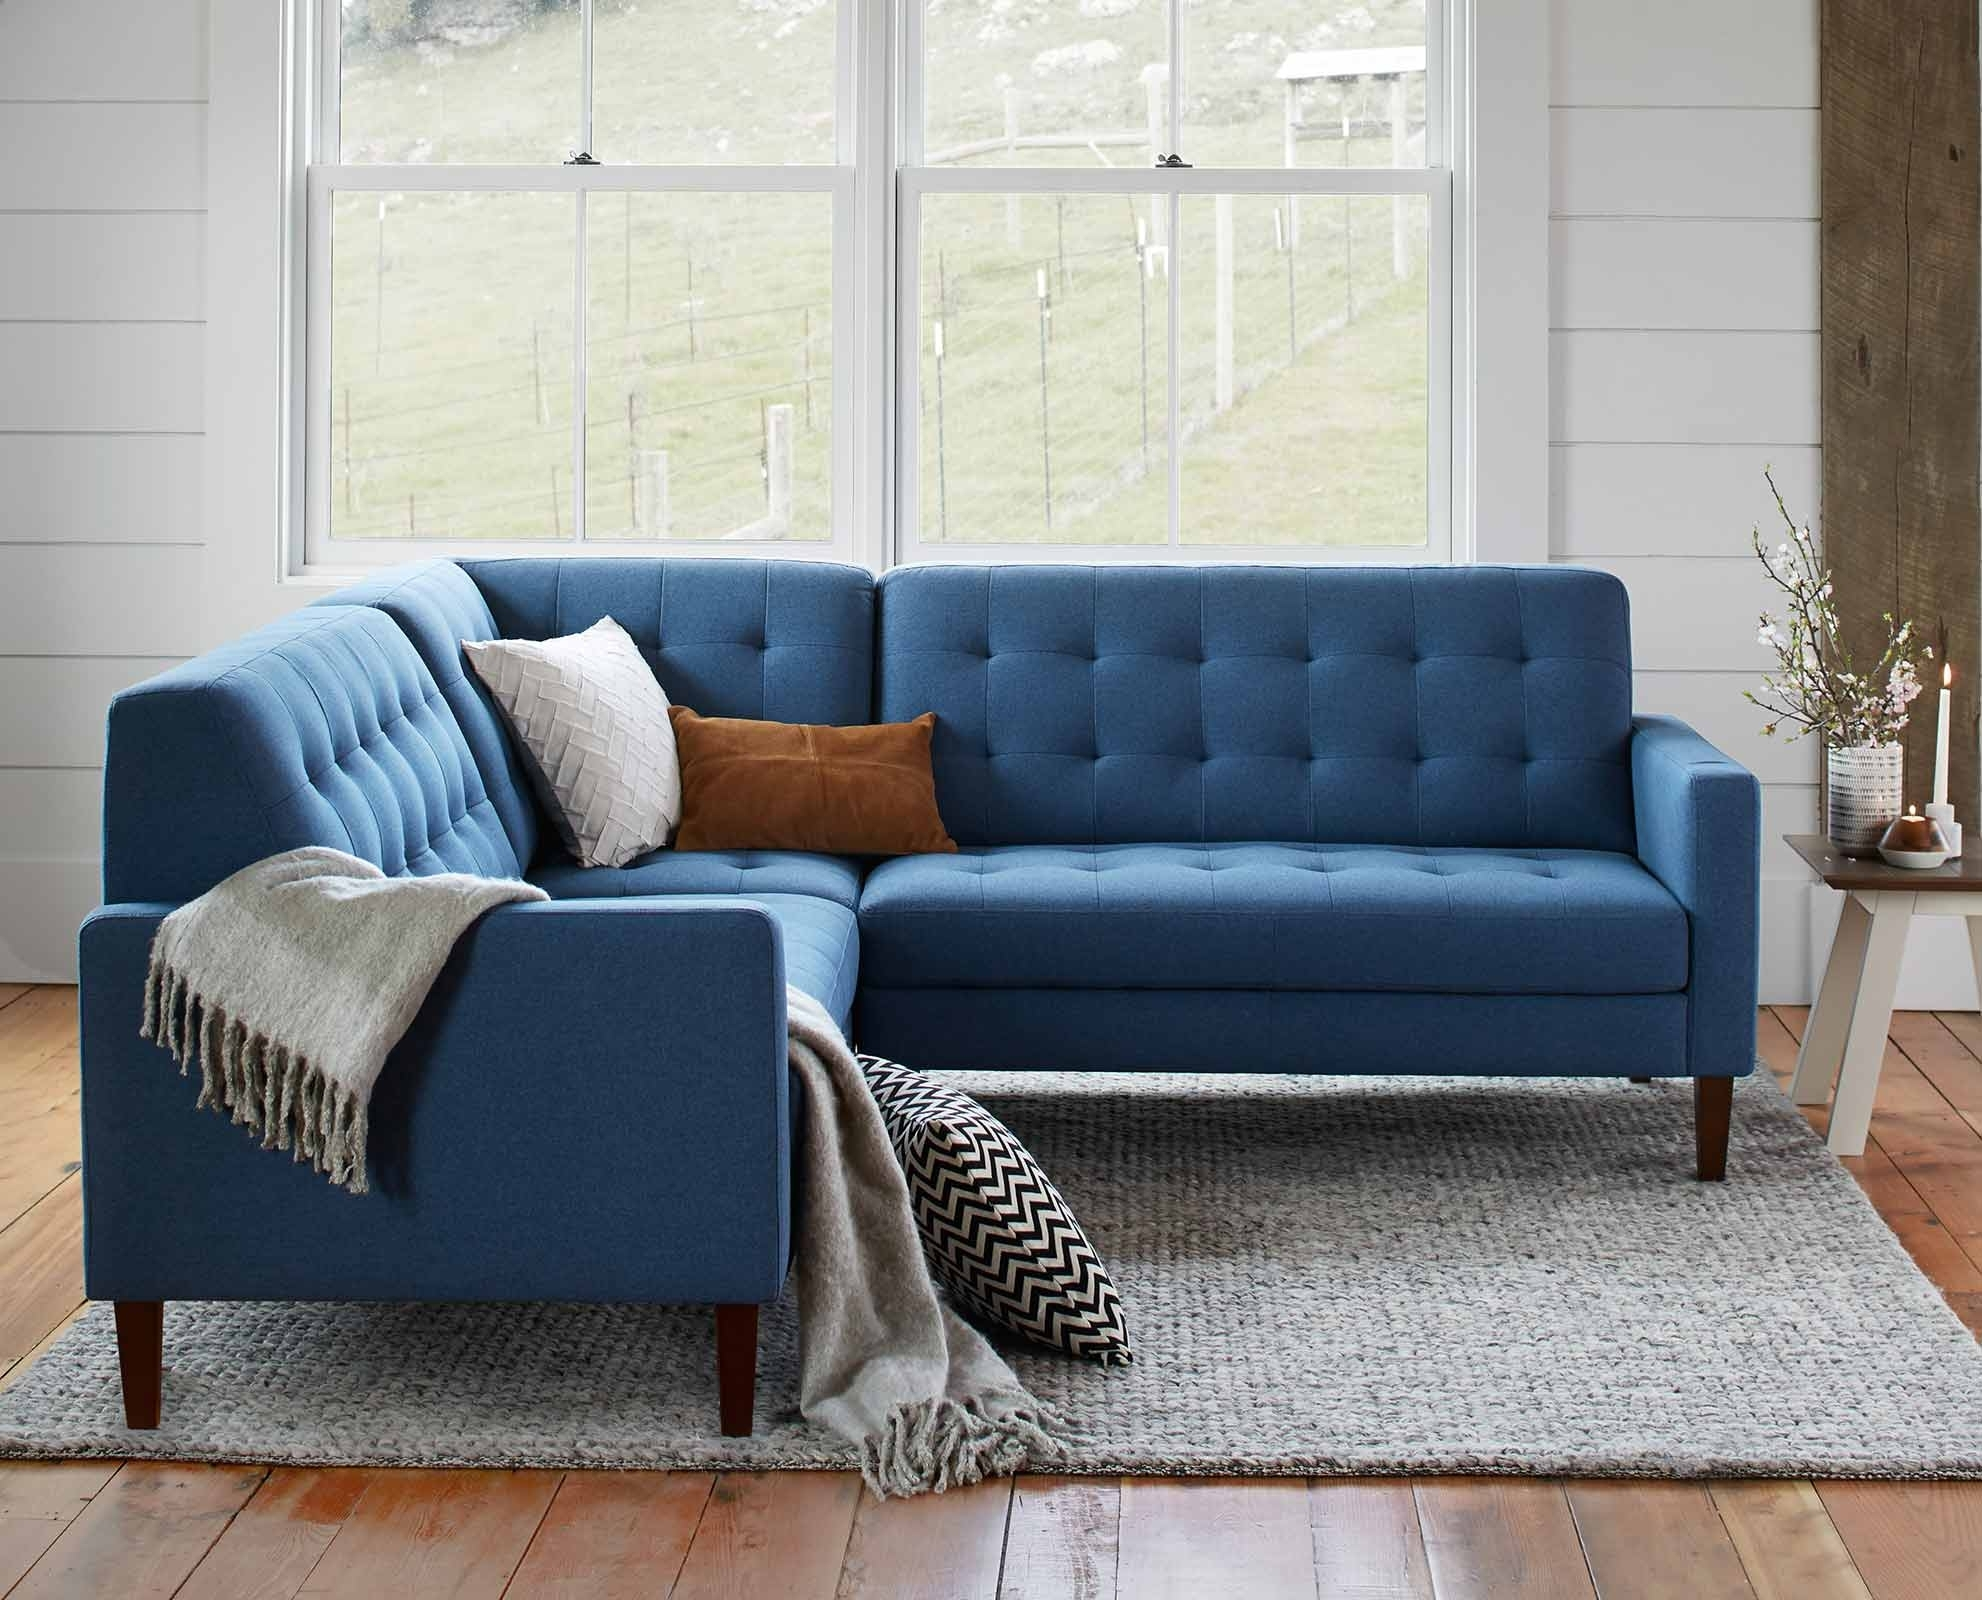 The Camilla Sectional From Scandinavian Designs – Adopt A Adopt A Throughout Dania Sectional Sofas (Image 10 of 10)